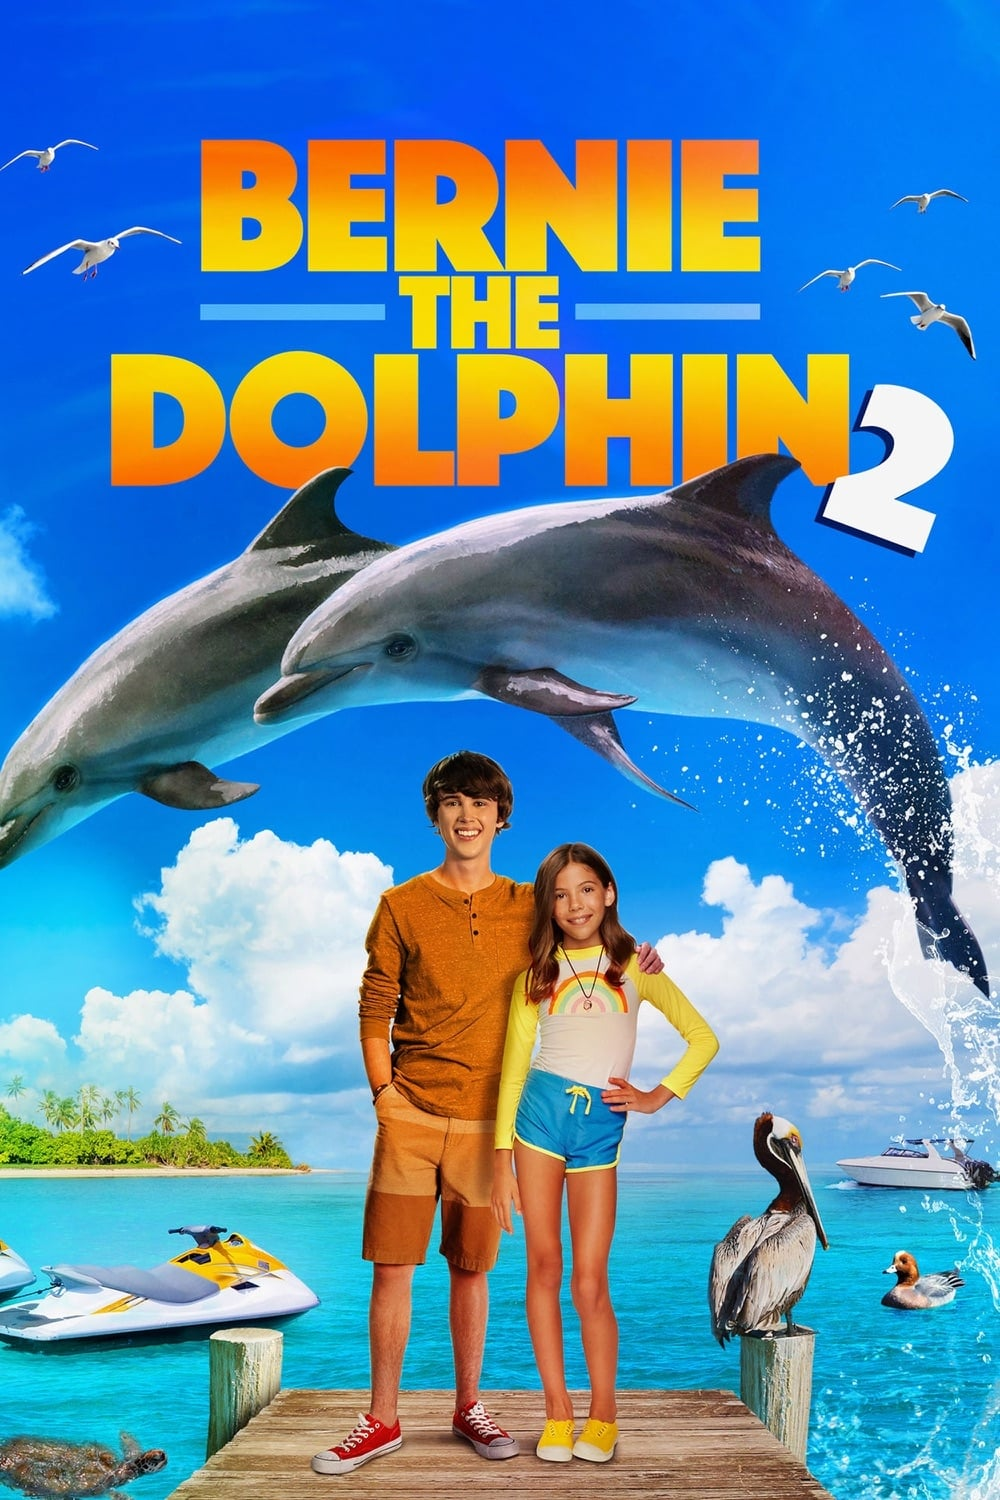 Bernie Le Dauphin 2 - Bernie The Dolphin 2 - 2020Film streaming gratuit (free)